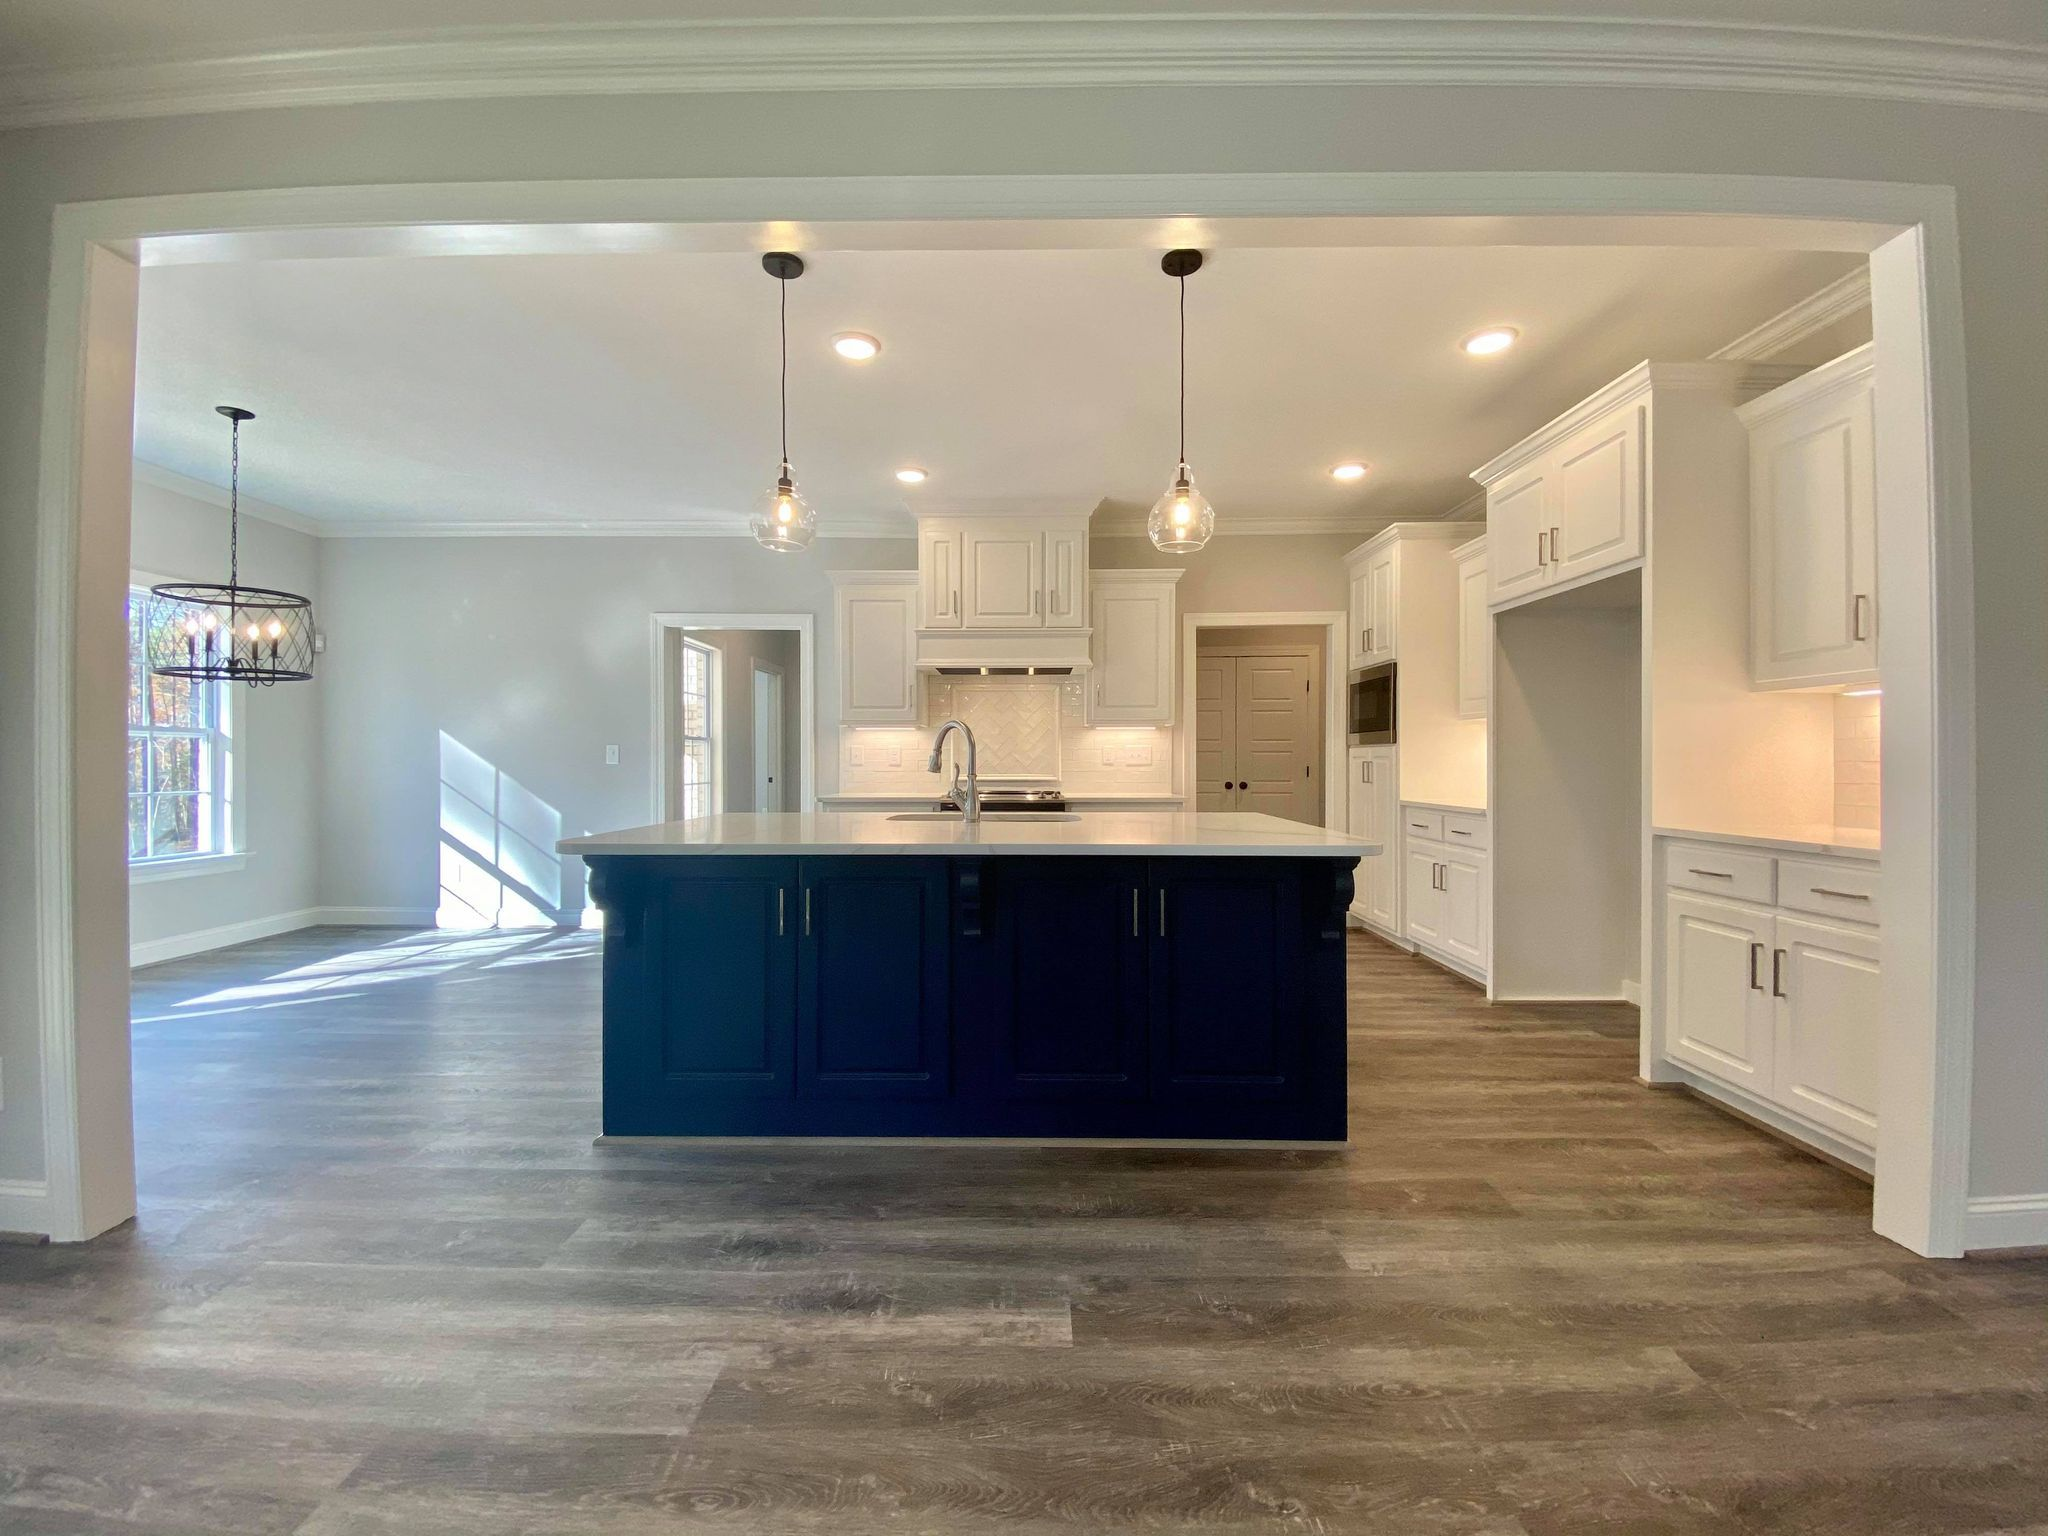 Kitchen featured in The Wooten By Four Seasons Contractors in Rocky Mount, NC